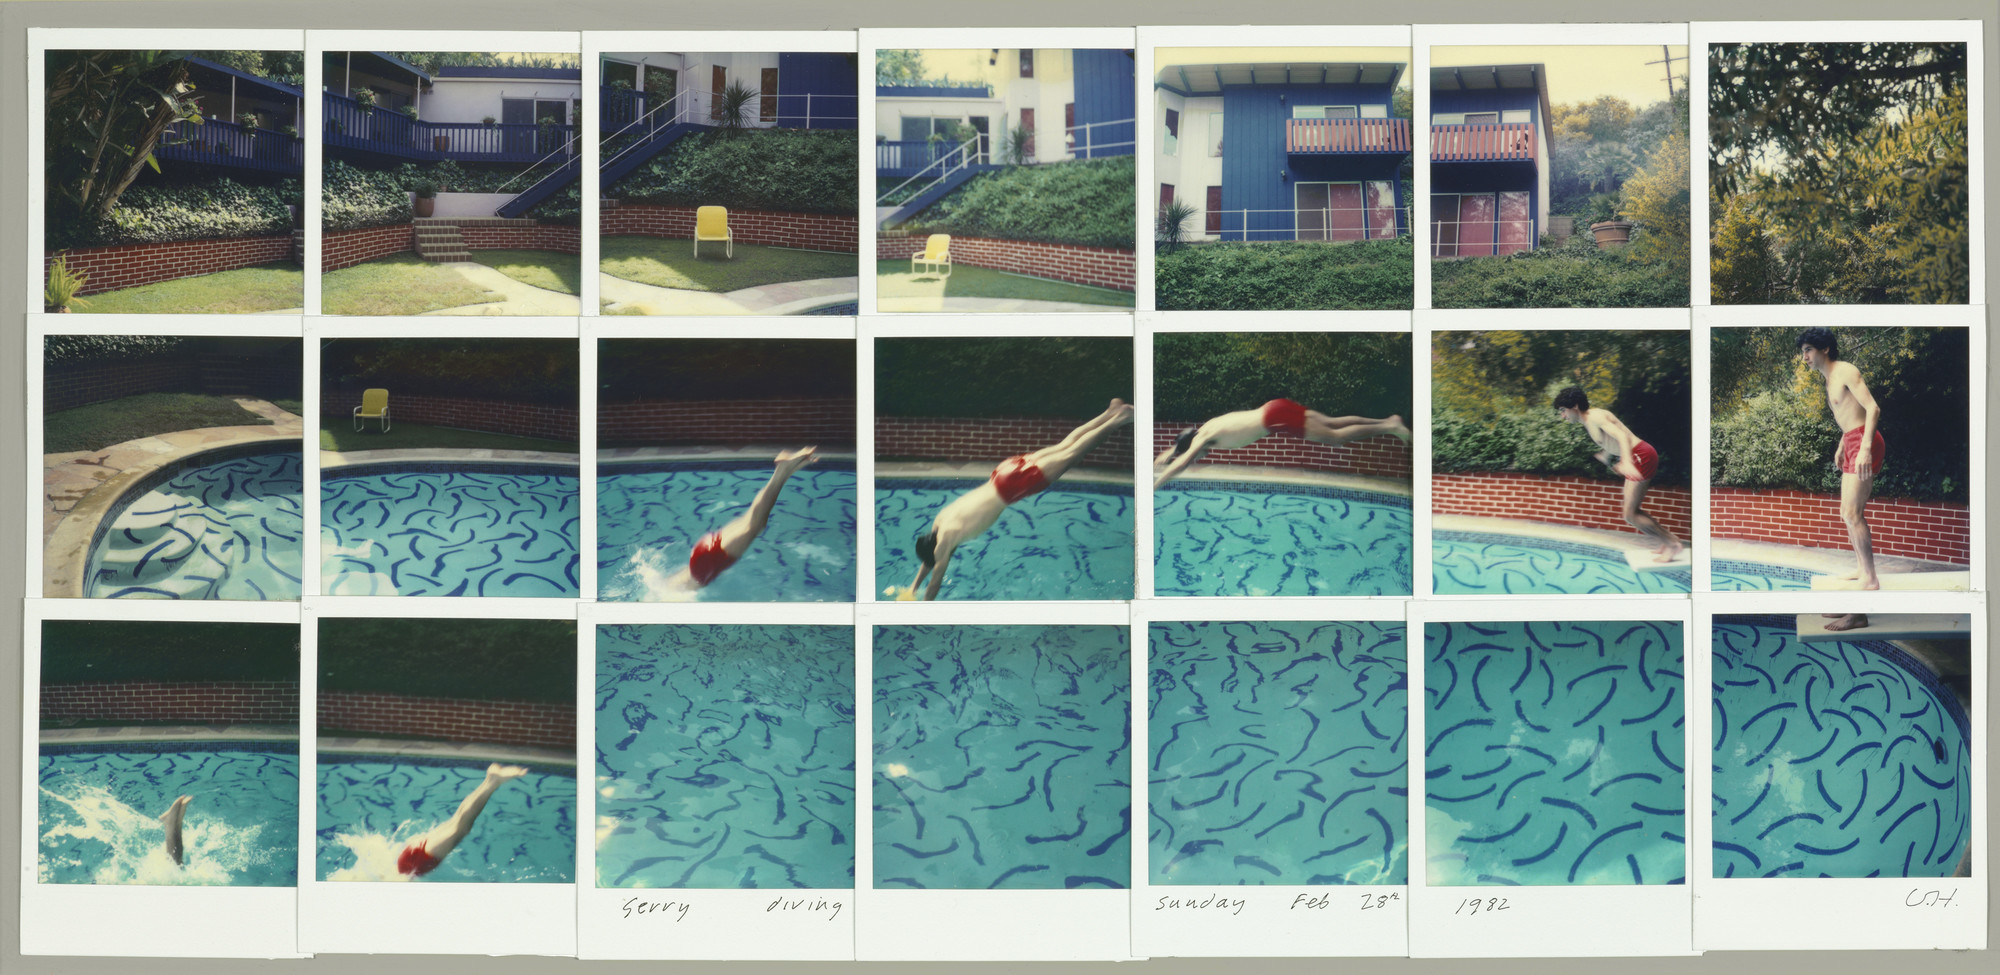 "David Hockney, ""Jerry Diving Sunday Feb. 28th 1982,"" composite Polaroid, 10.5 inches by 24.5 inches."